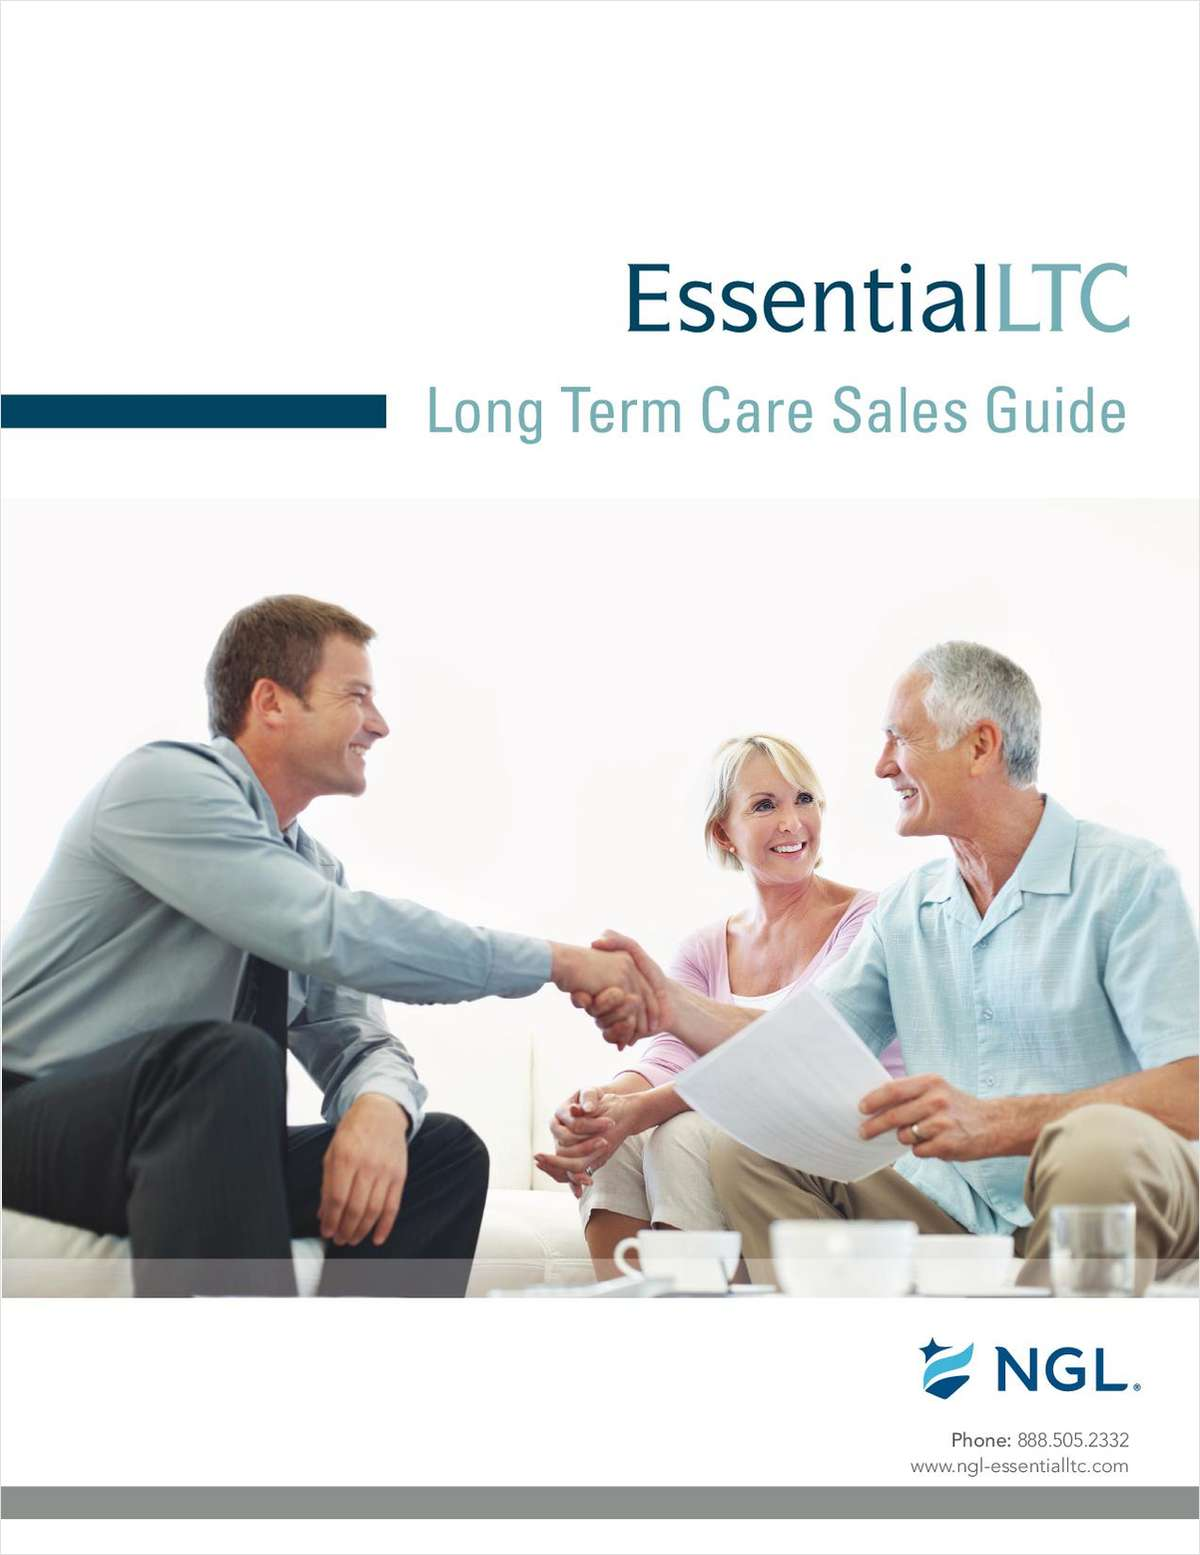 Long Term Care Sales Guide: How to Customize Plans for Clients